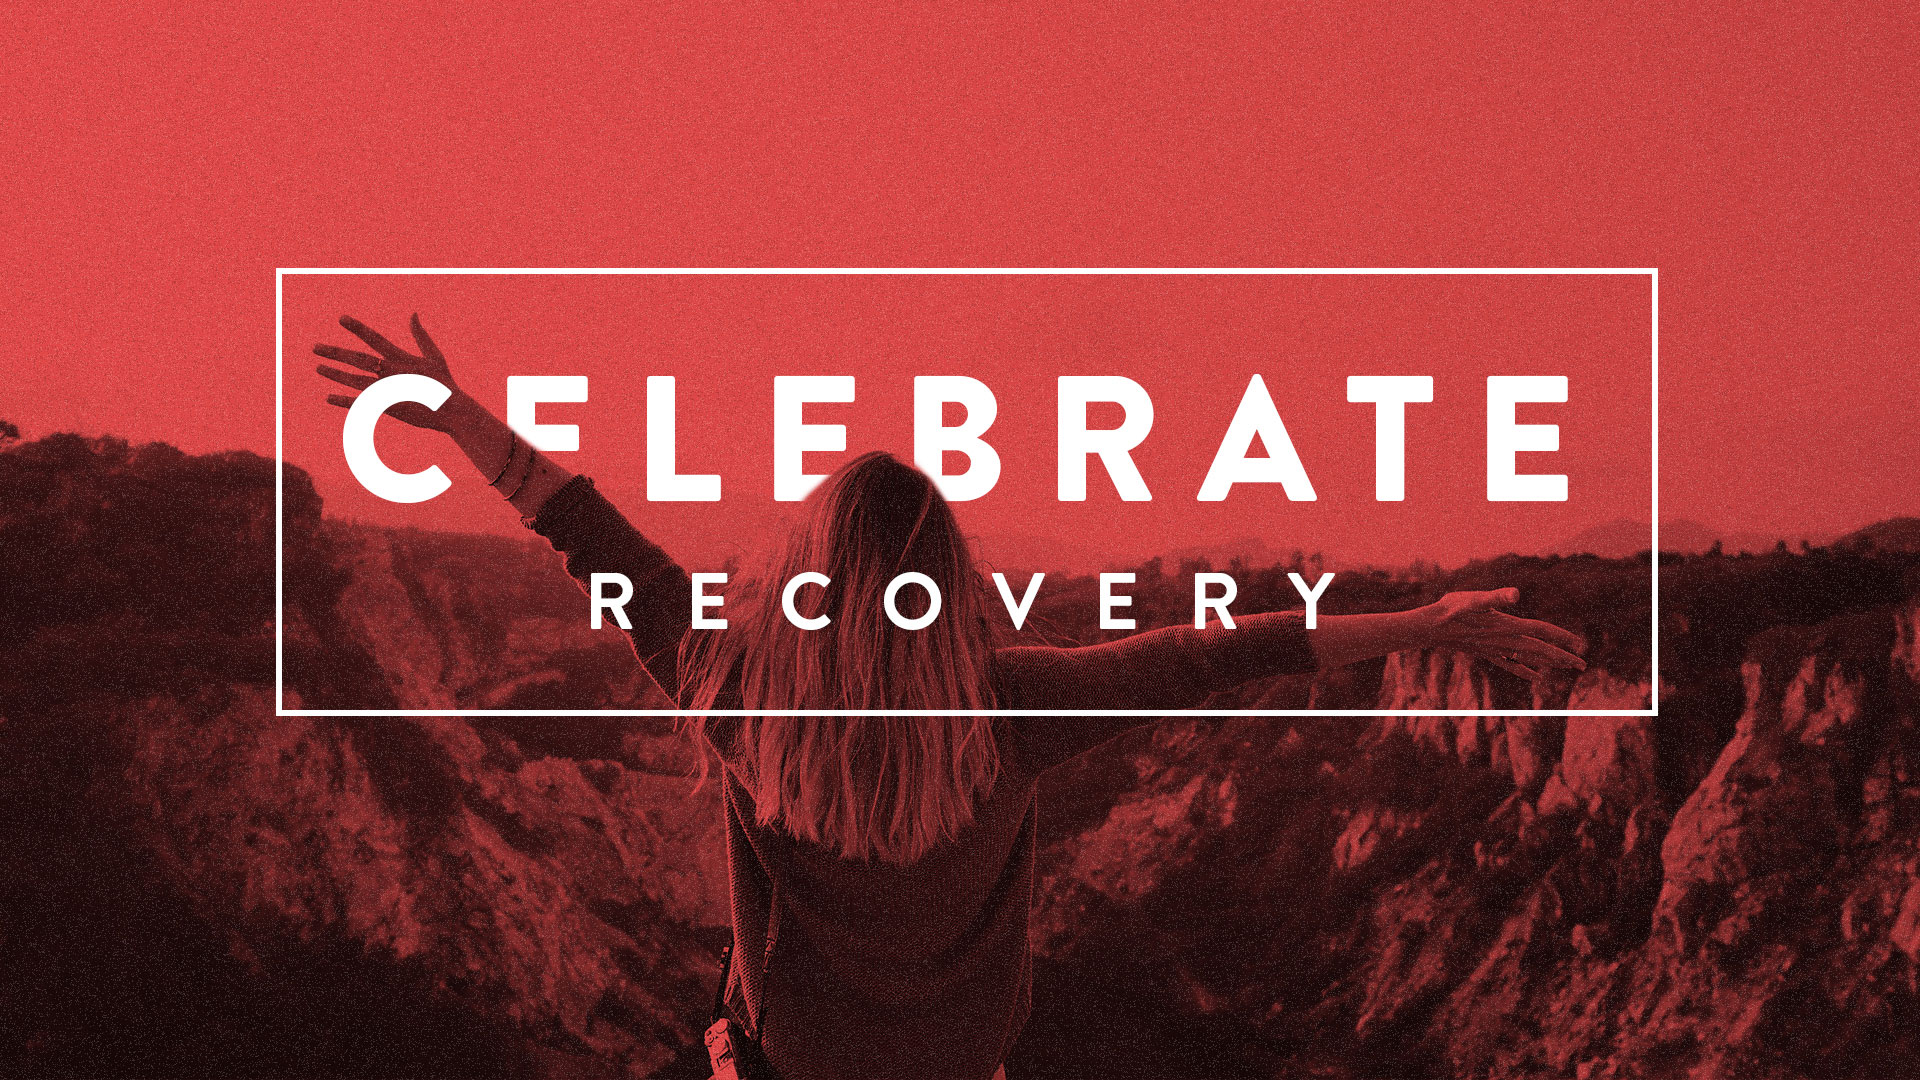 Celebrate Recovery sermon series at Pearce Church in Rochester, NY